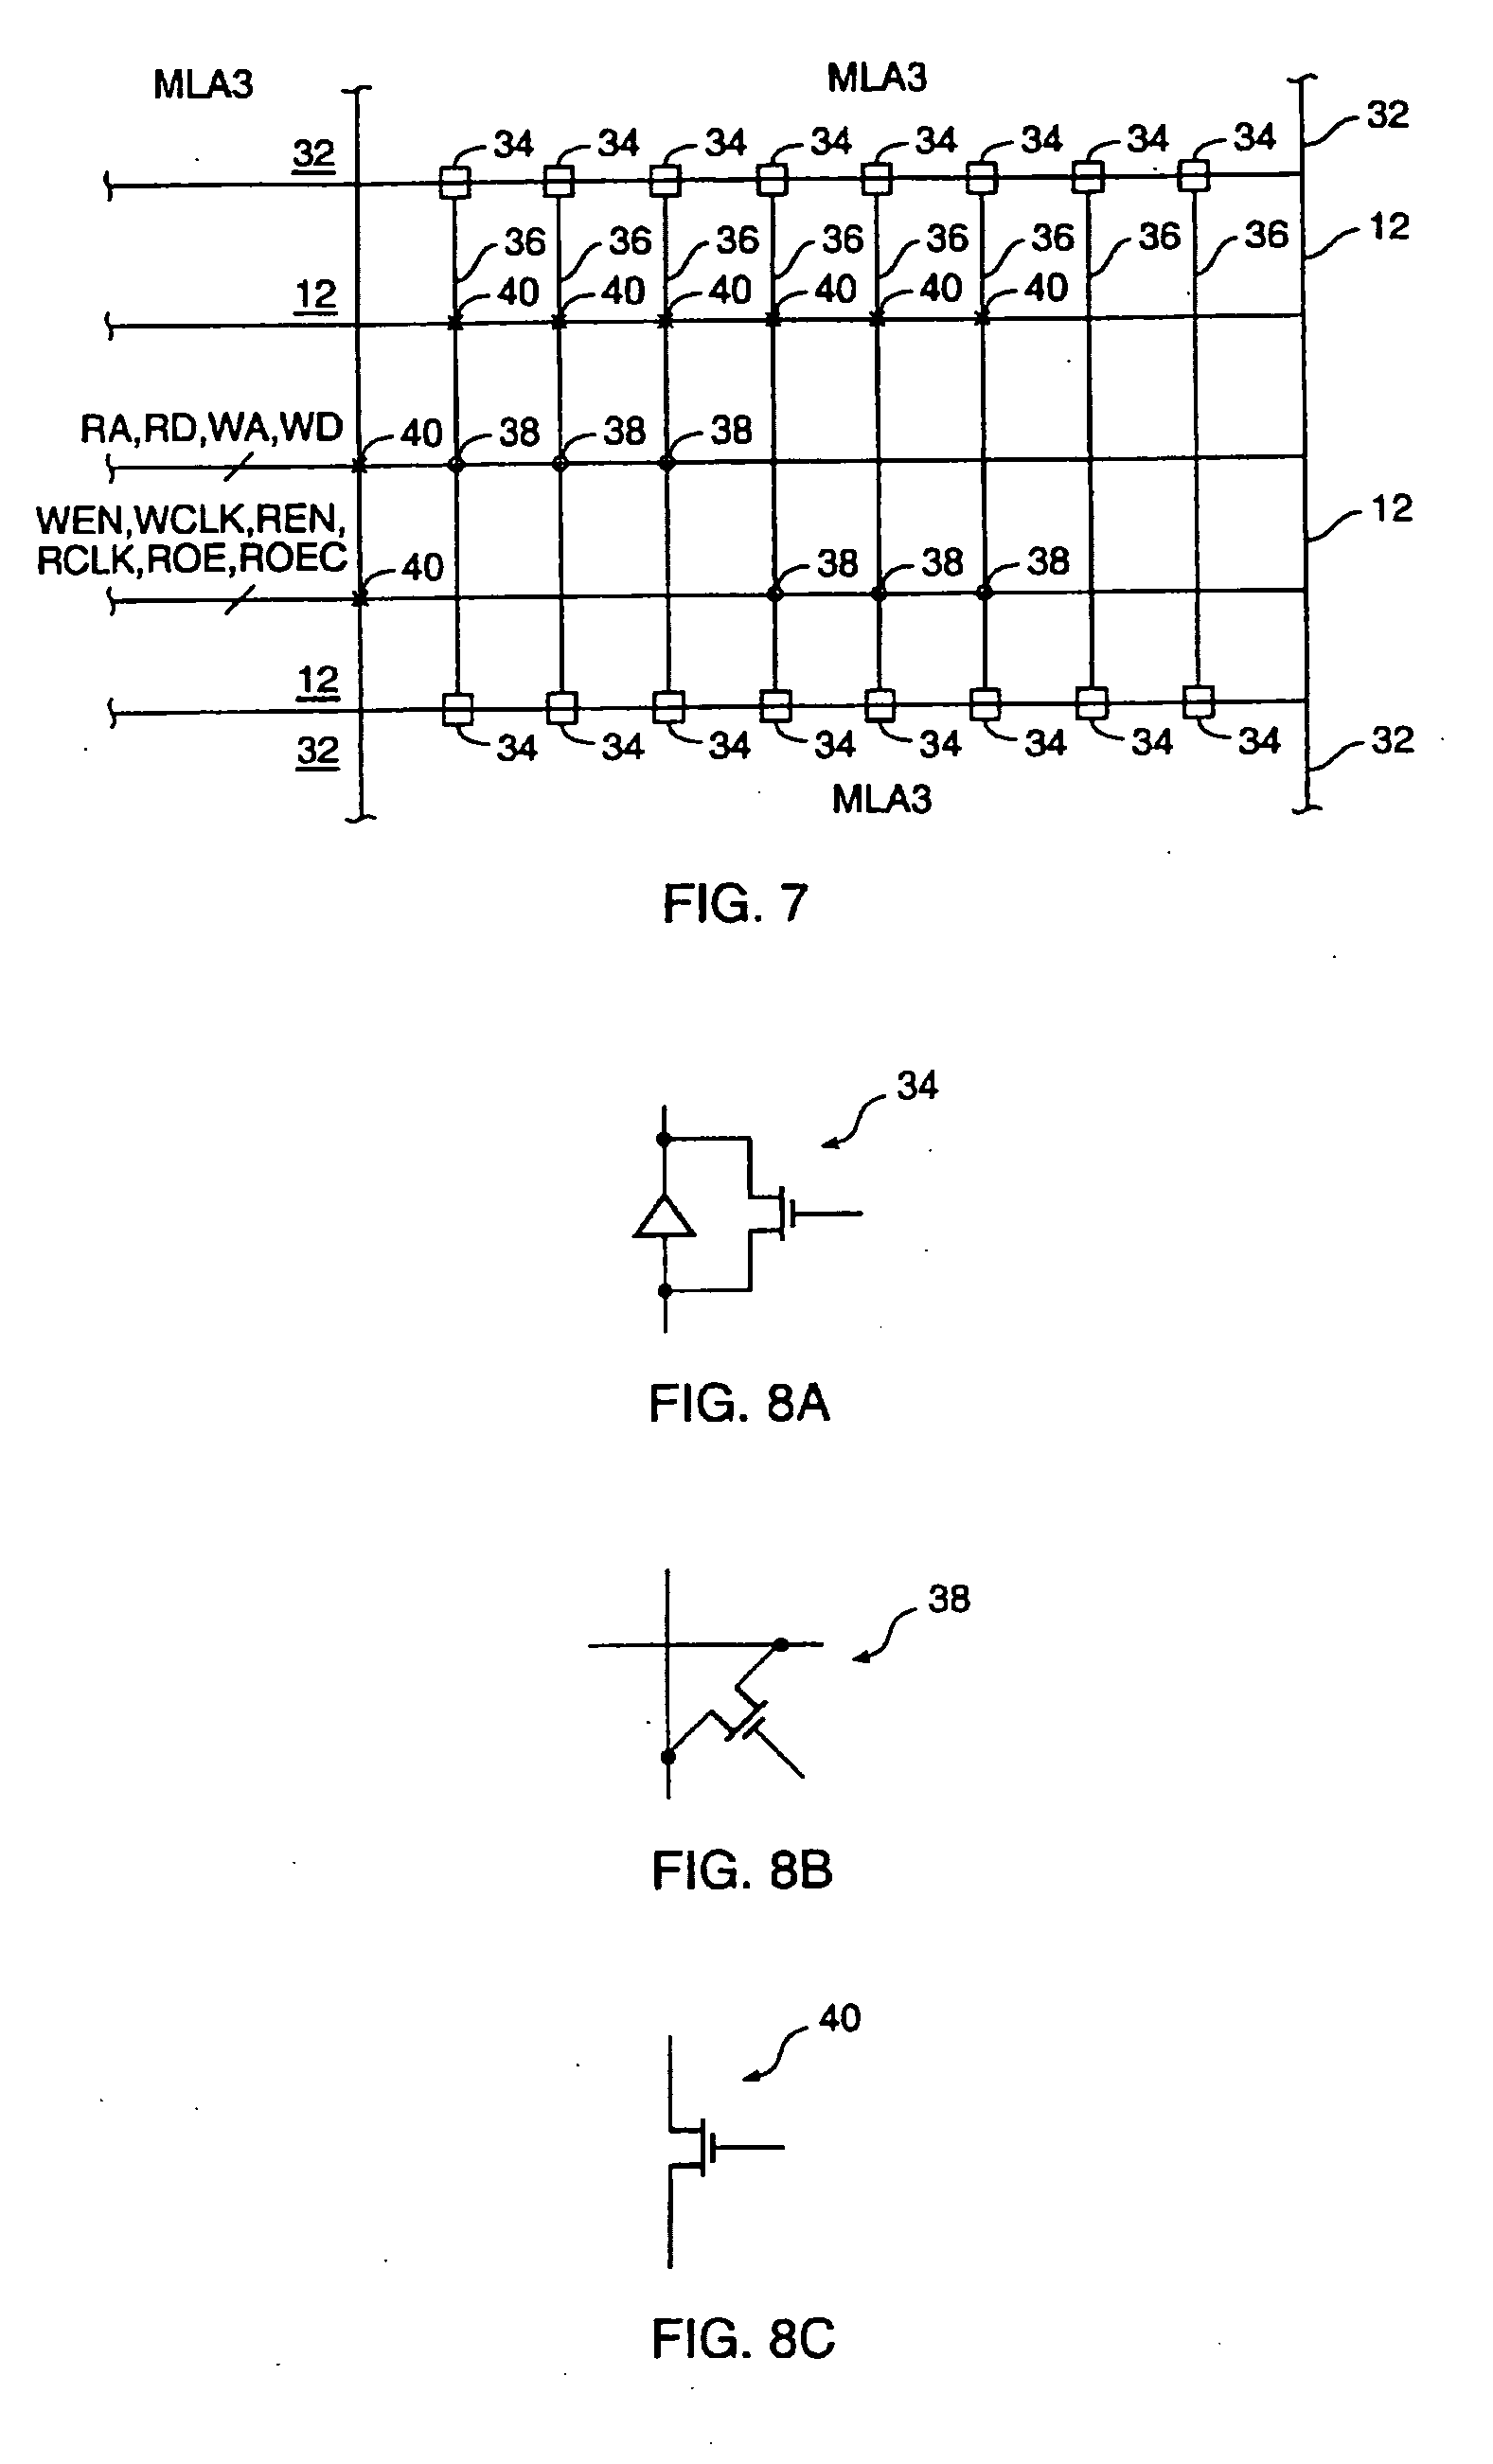 Patente Us20060193181 Sram Bus Architecture And Interconnect To An Figure 8 4x1 Multiplexer With 2x4 Decoder Selector Block Diagram Patent Drawing